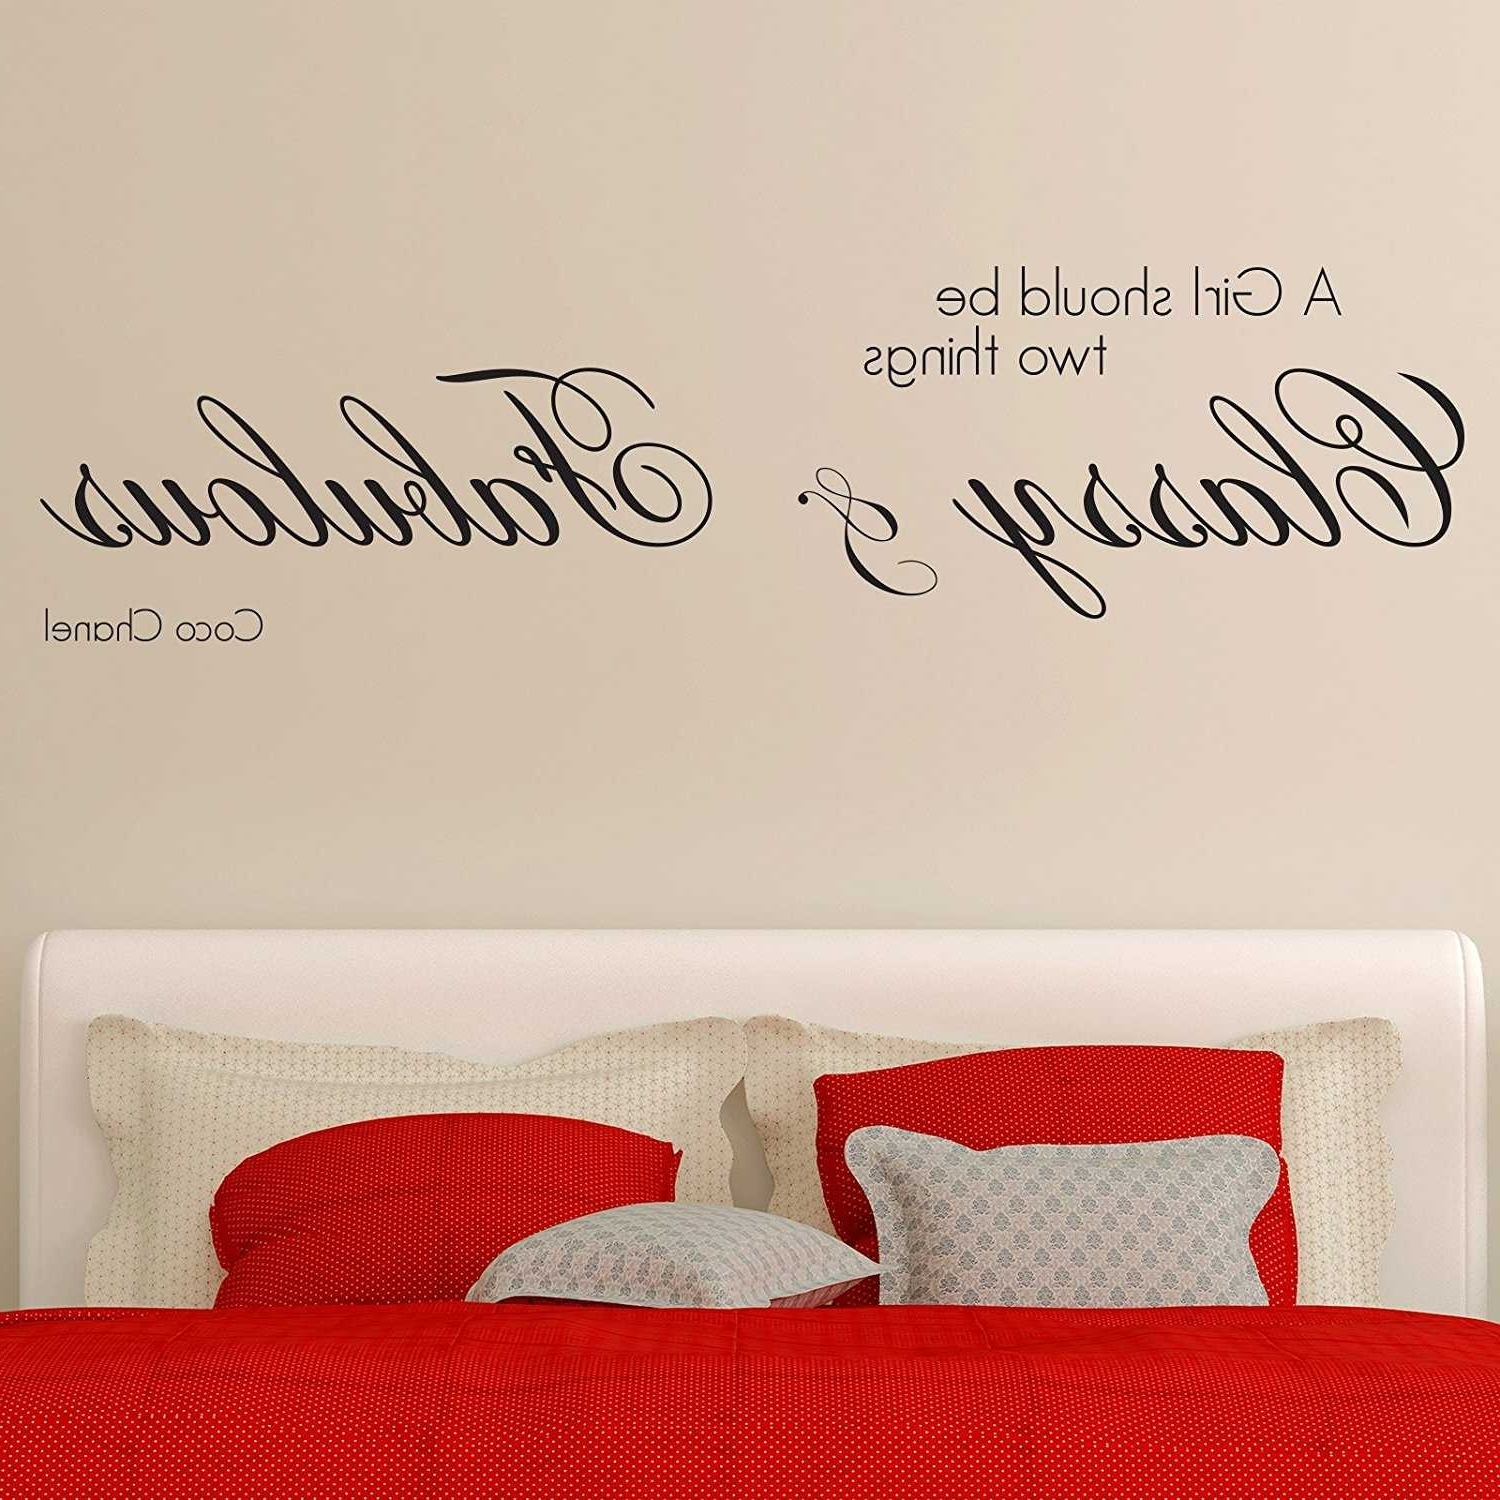 Coco Chanel Wall Stickers Regarding Well Liked Coco Chanel Wall Decal (View 7 of 15)